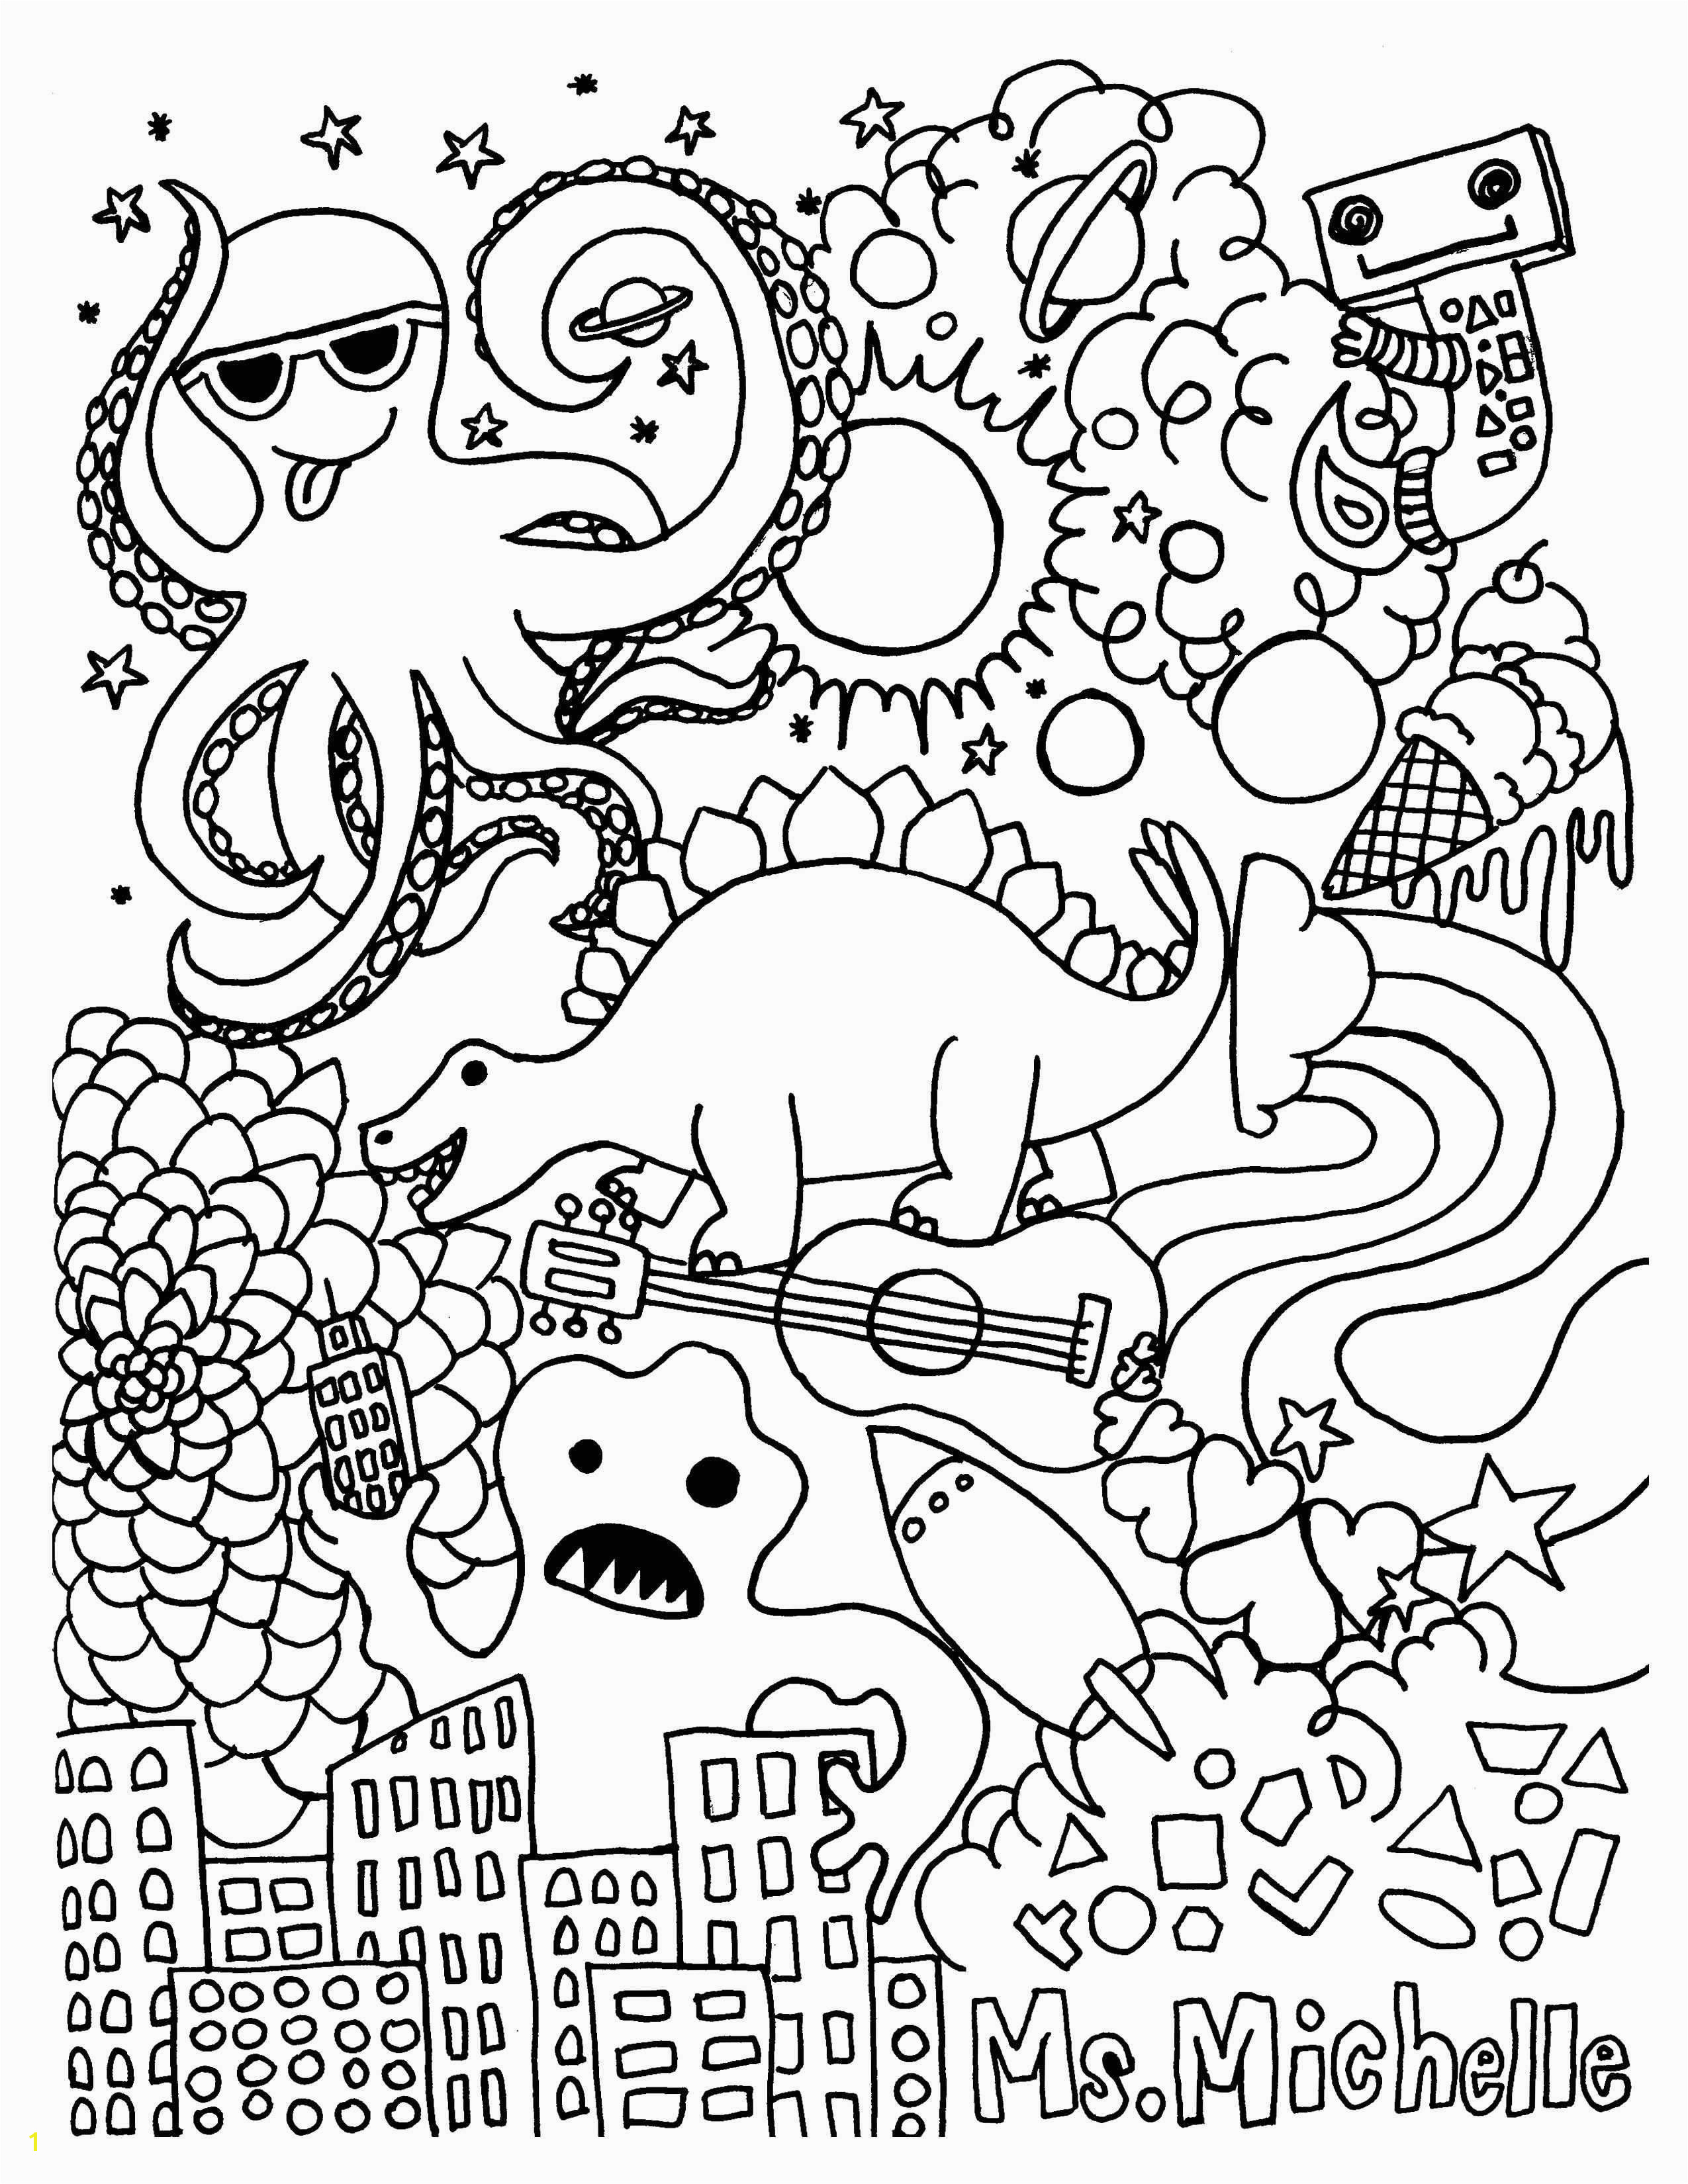 Christmas Coloring Pages Preschool Free Printable Christmas Coloring Pages Preschool